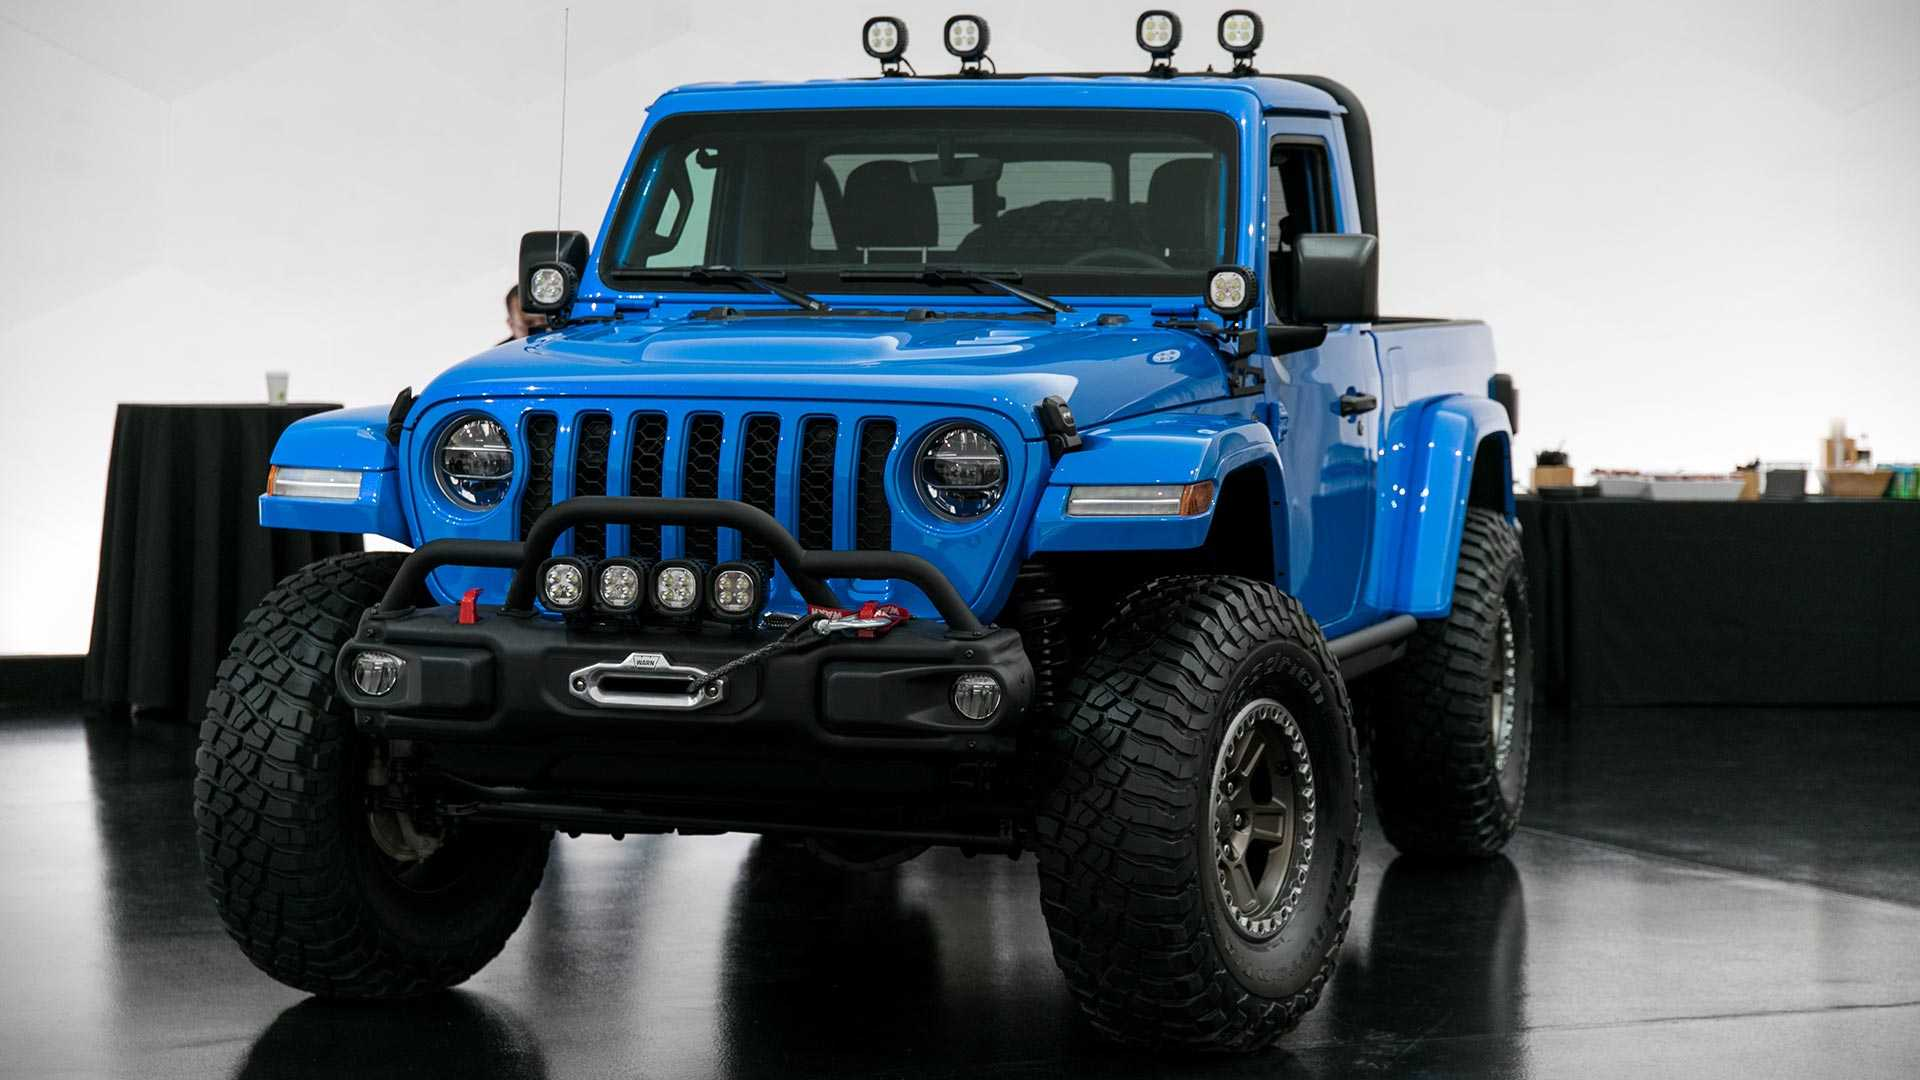 Hellcat Engine Fits In Jeep Wrangler And Gladiator, But...